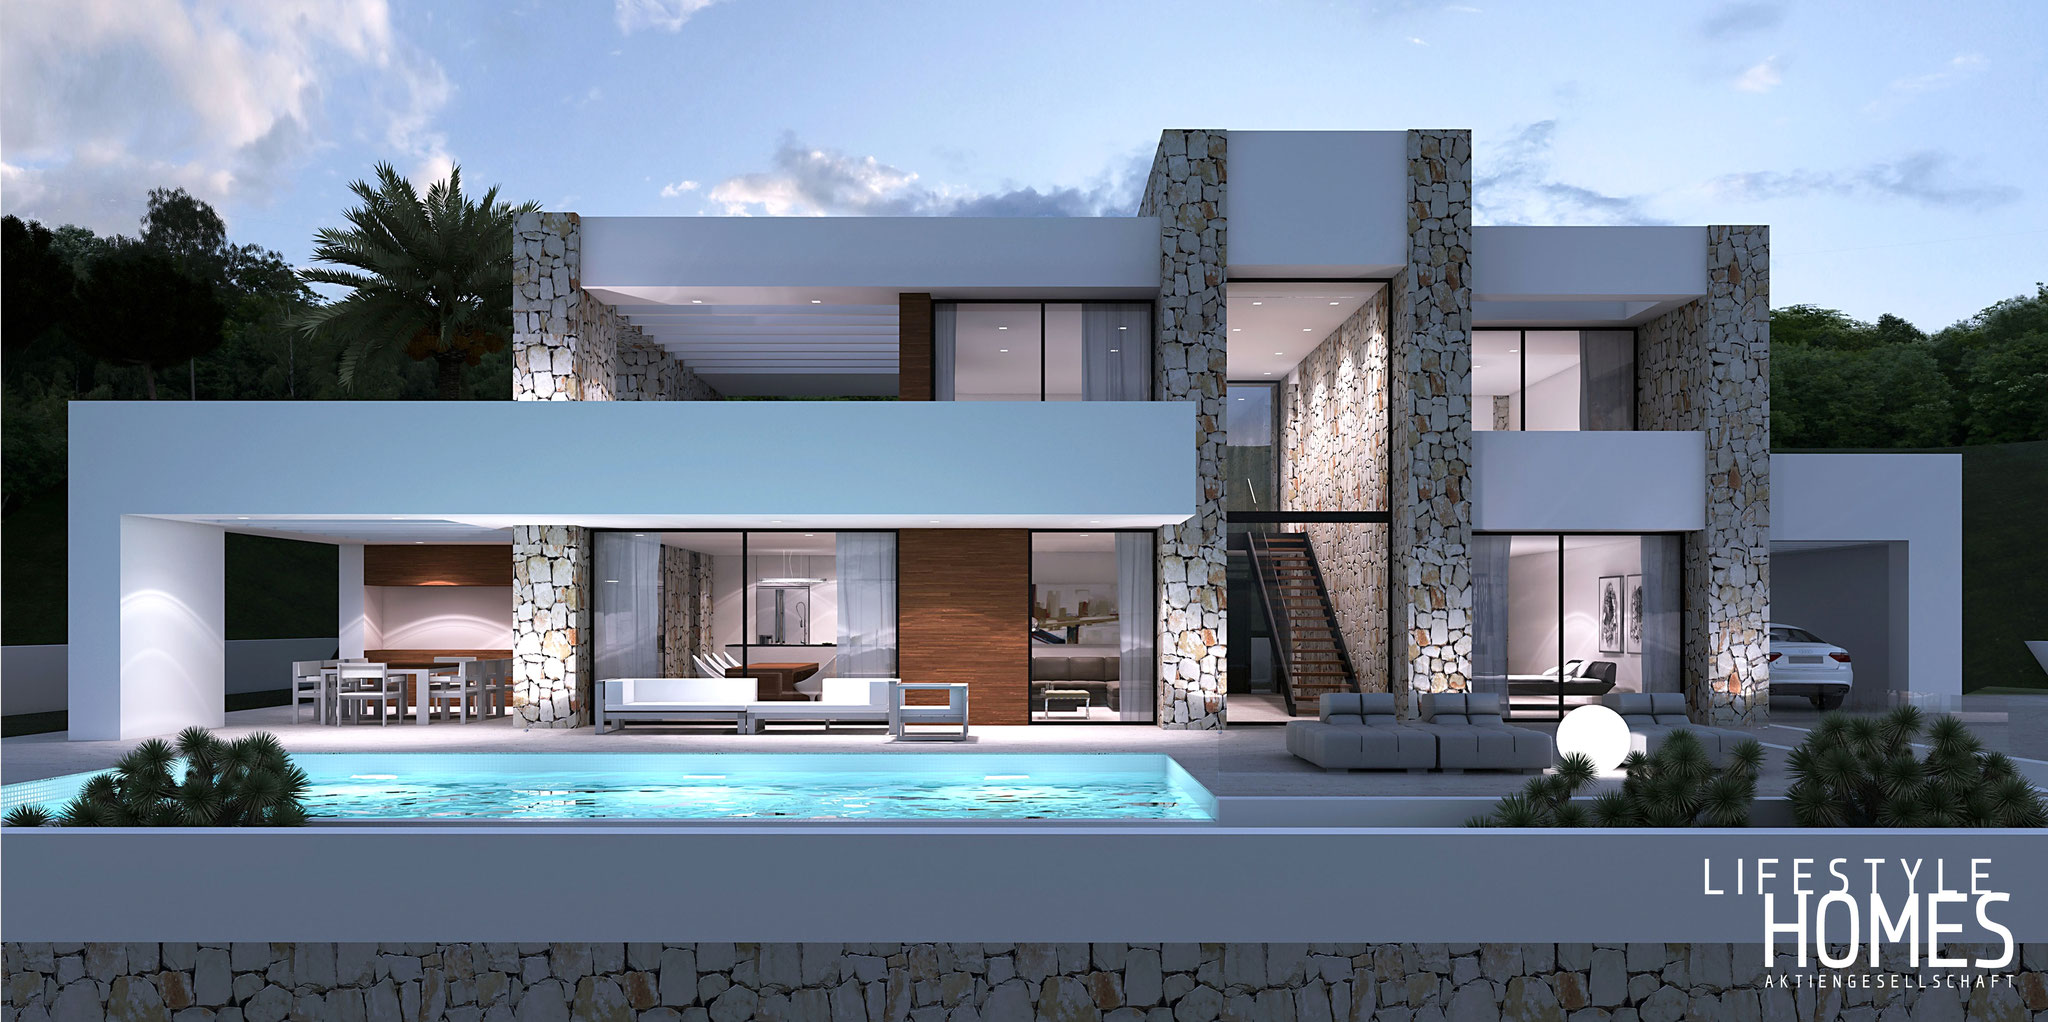 Villa Mit Pool By Lifestyle Homes AG